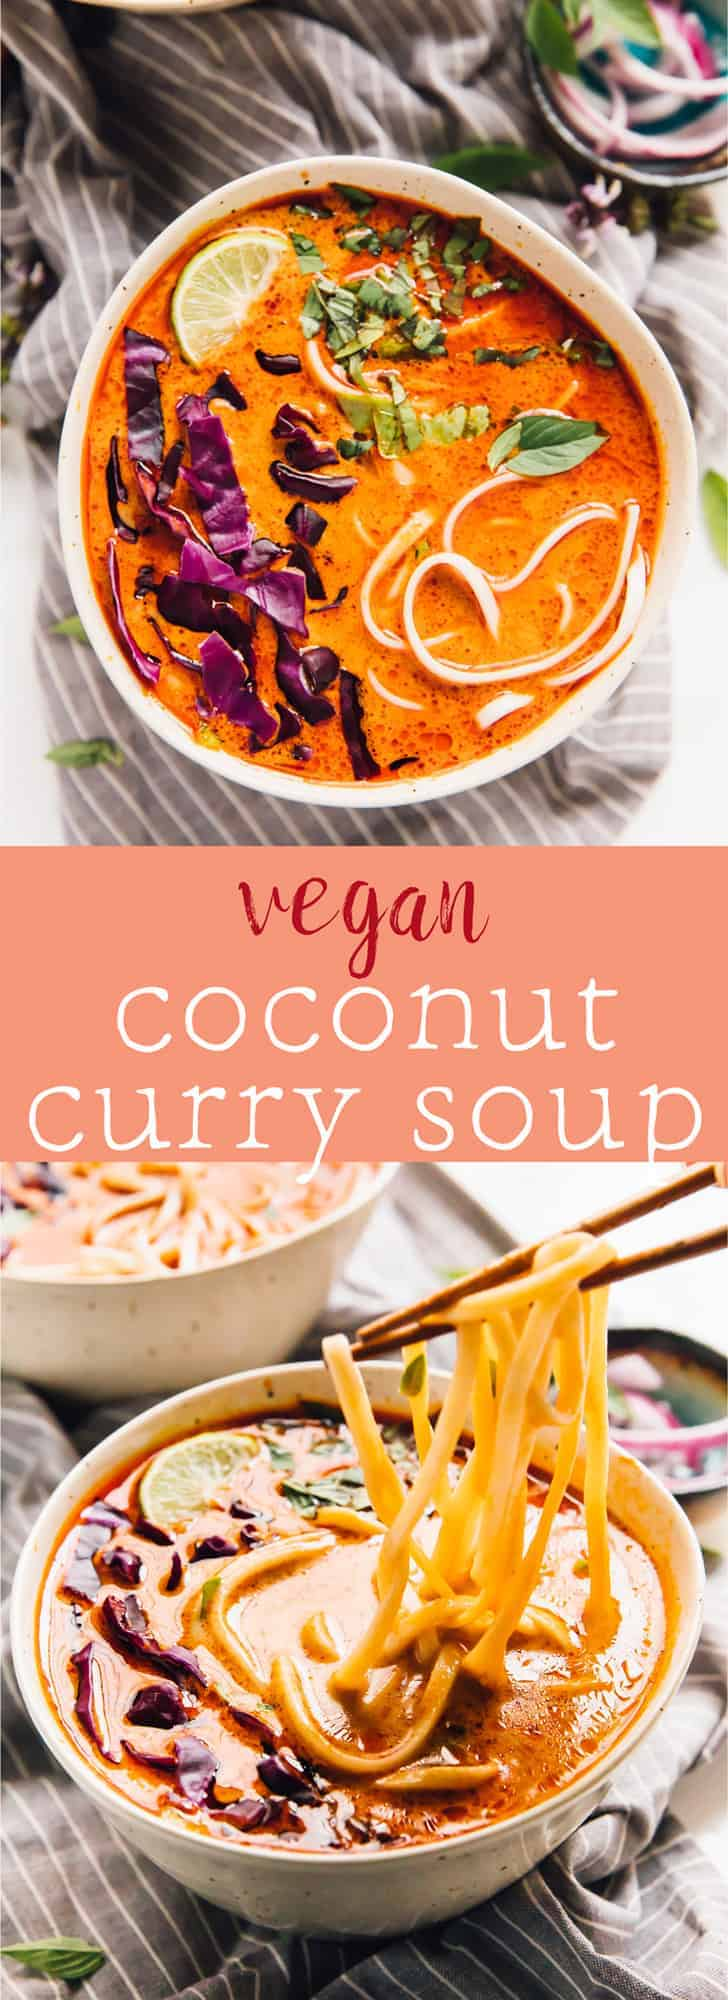 This Vegan Coconut Curry Soup is loaded with lots of divine Thai flavours and is so delicious! It takes only about 35 minutes from start to finish!